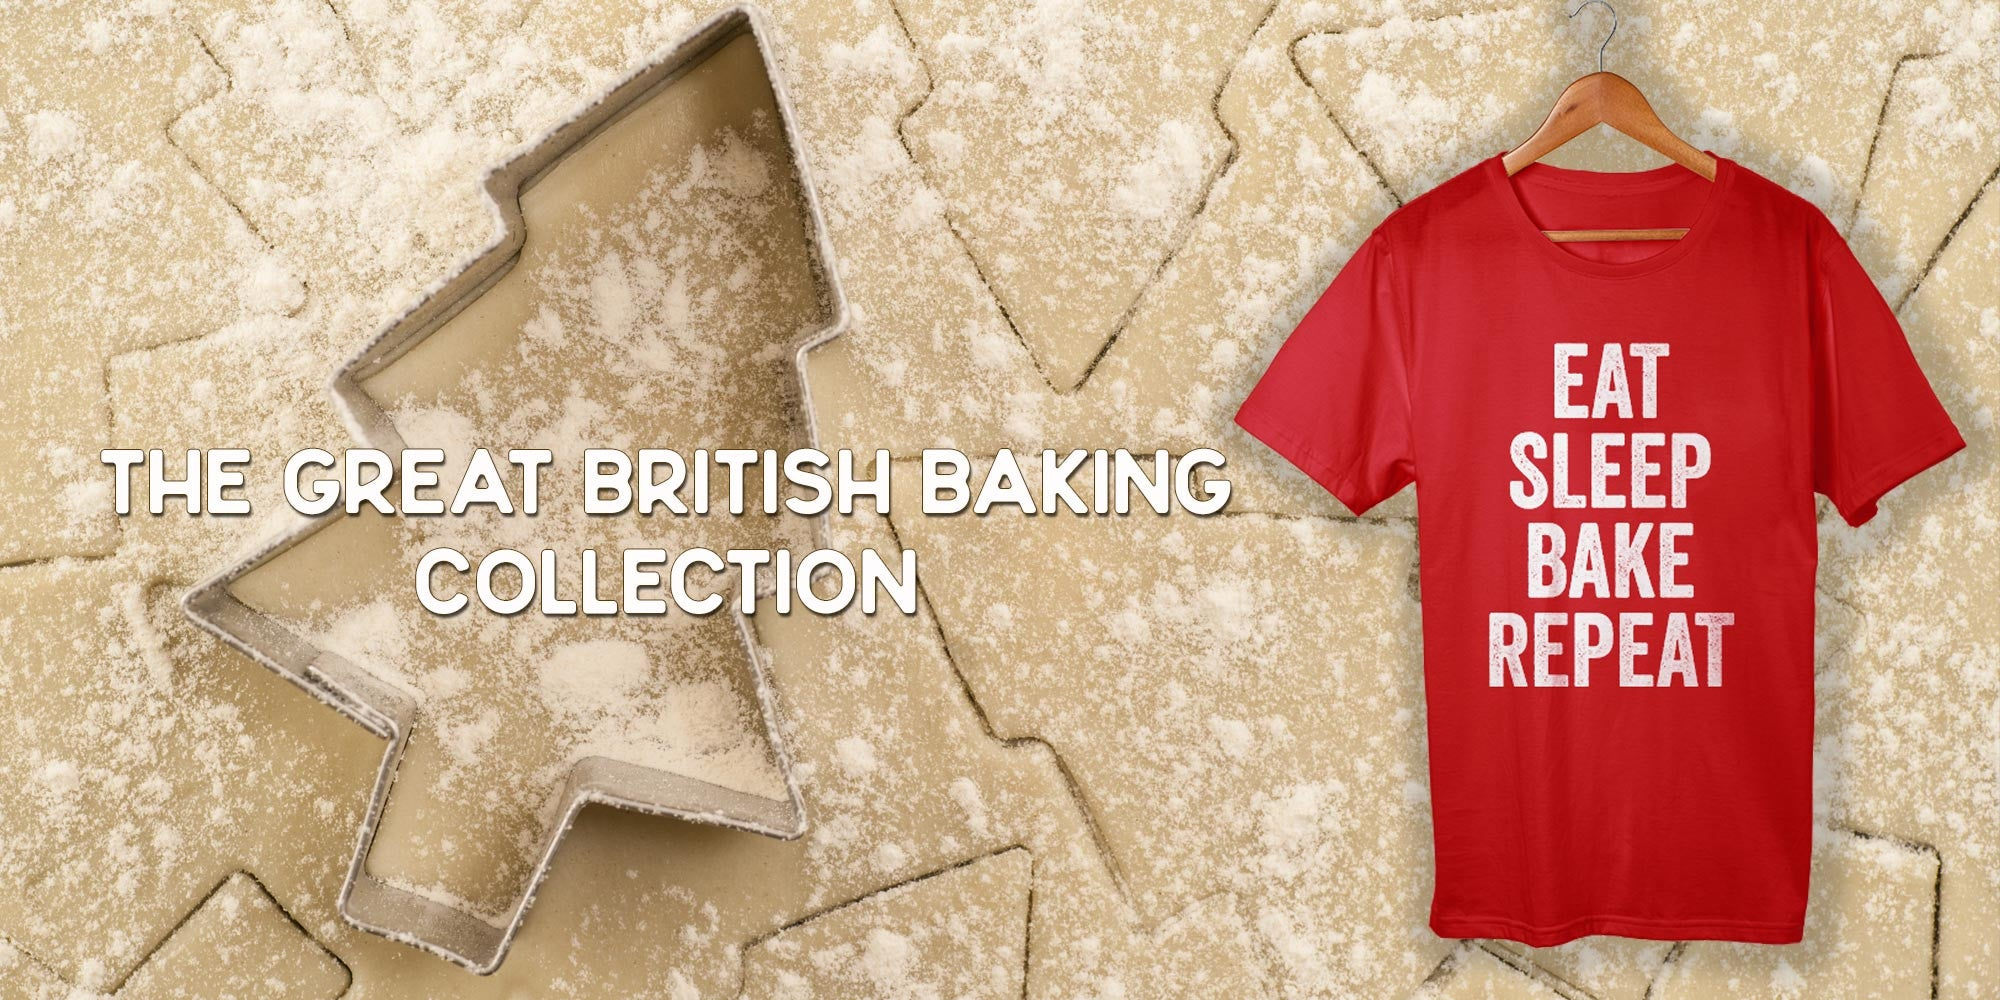 The Great British Baking Collection